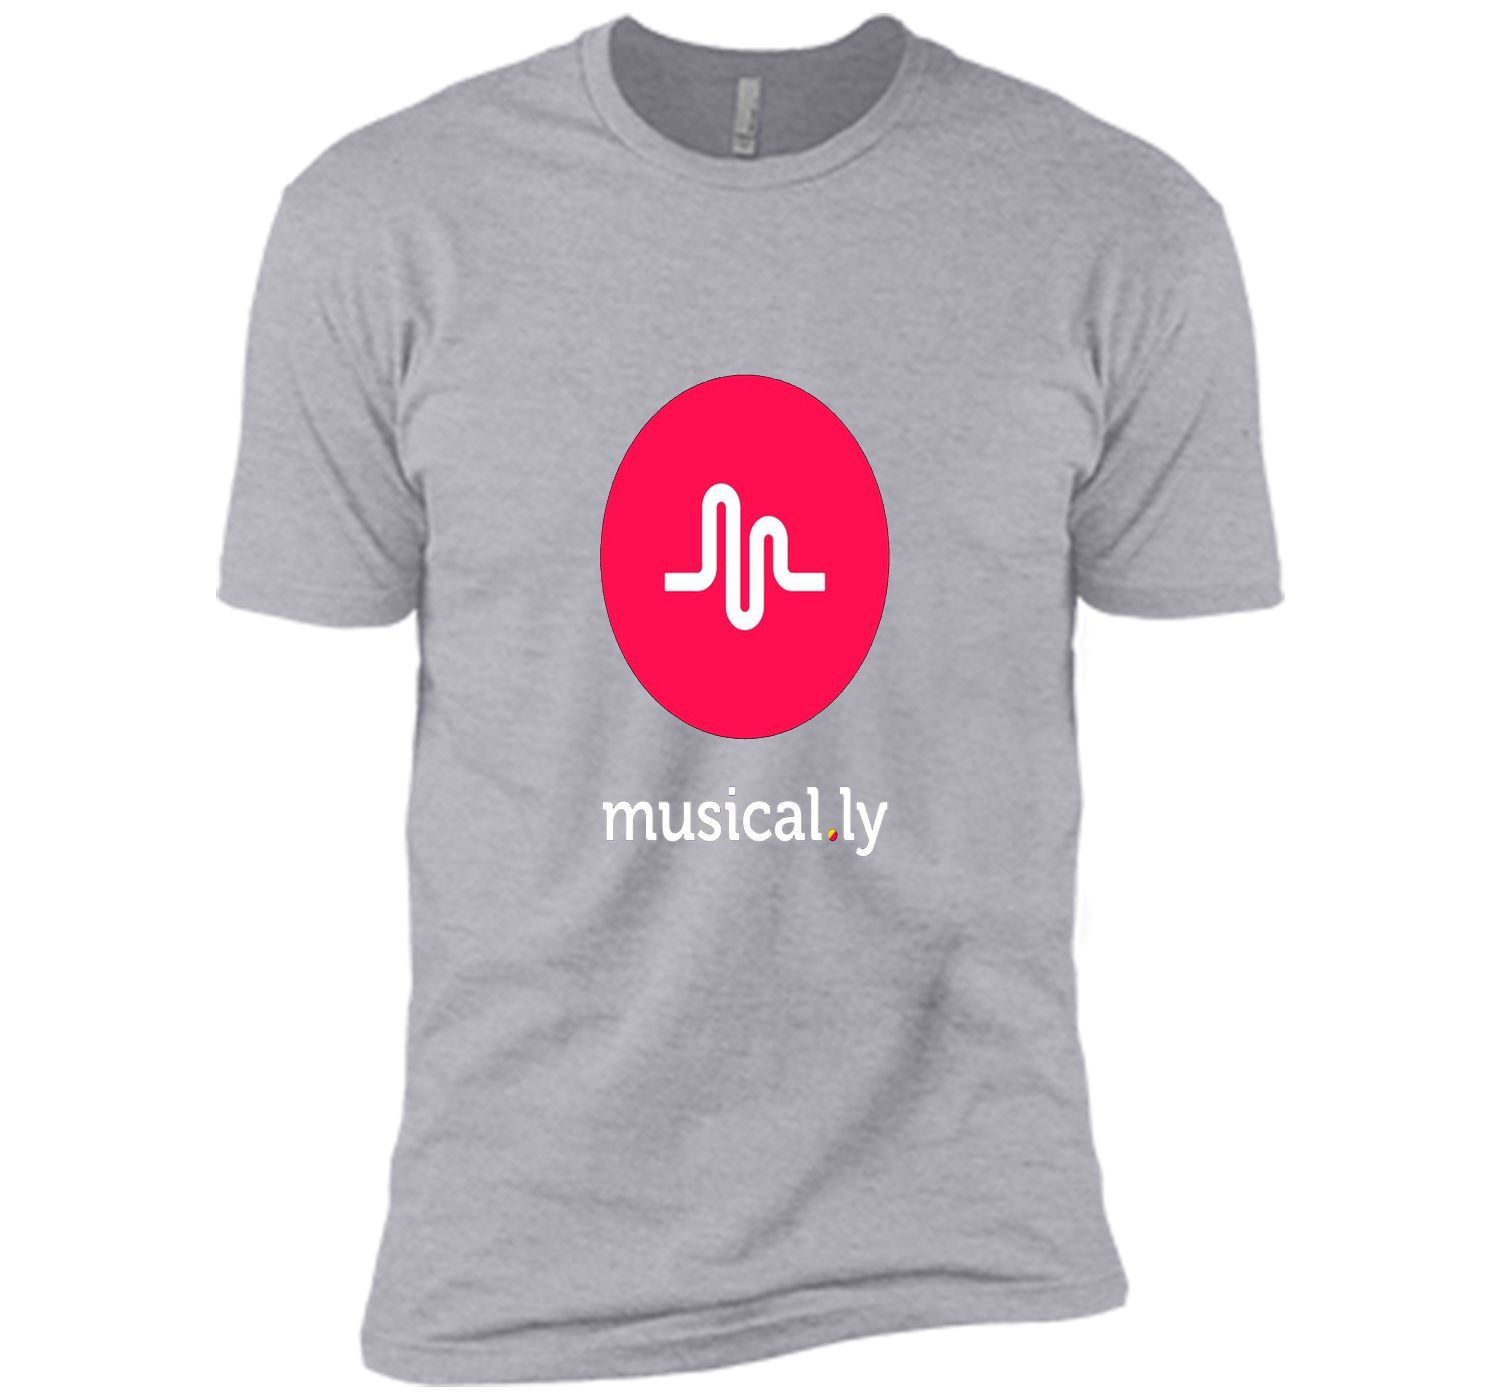 'musical.ly' T-Shirt (Black - Fitted Cut)